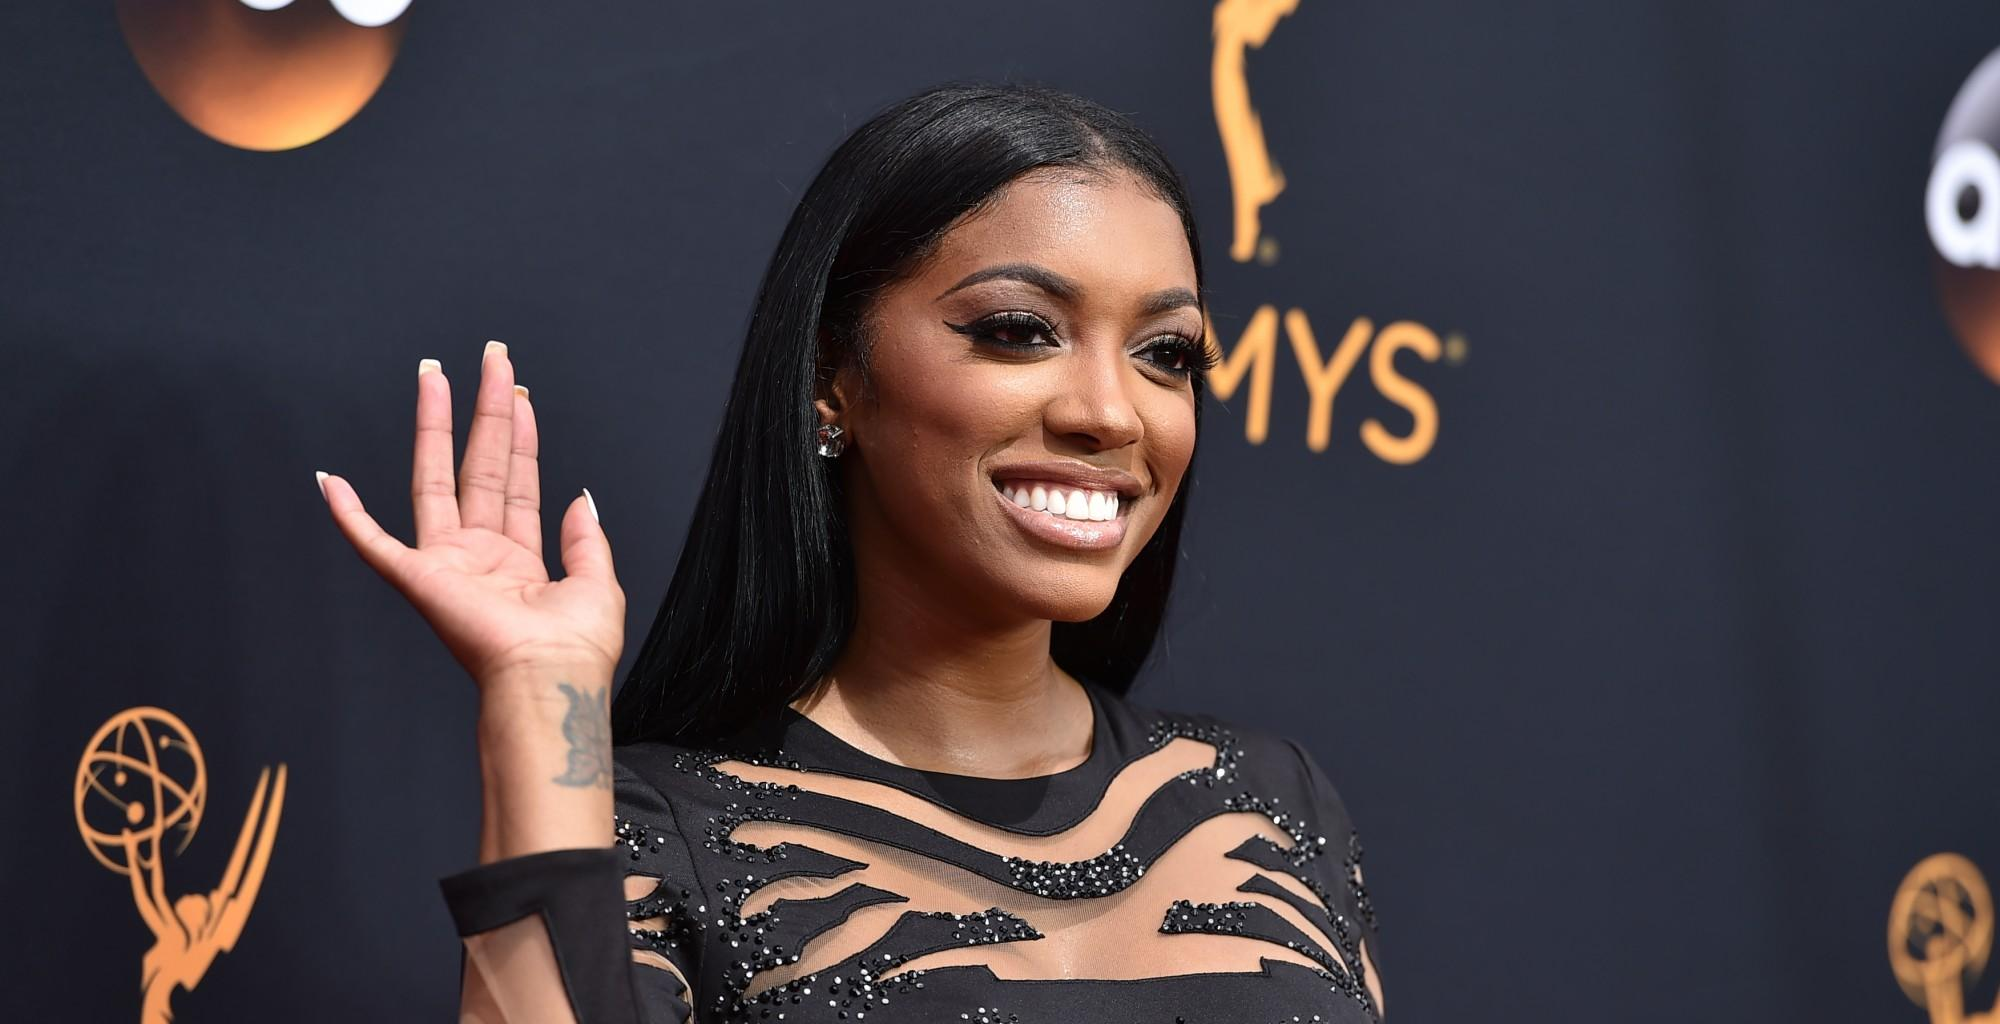 Porsha Williams' Daughter, Pilar Jhena Is Prepared For Christmas - Check Out The Gorgeous Photo